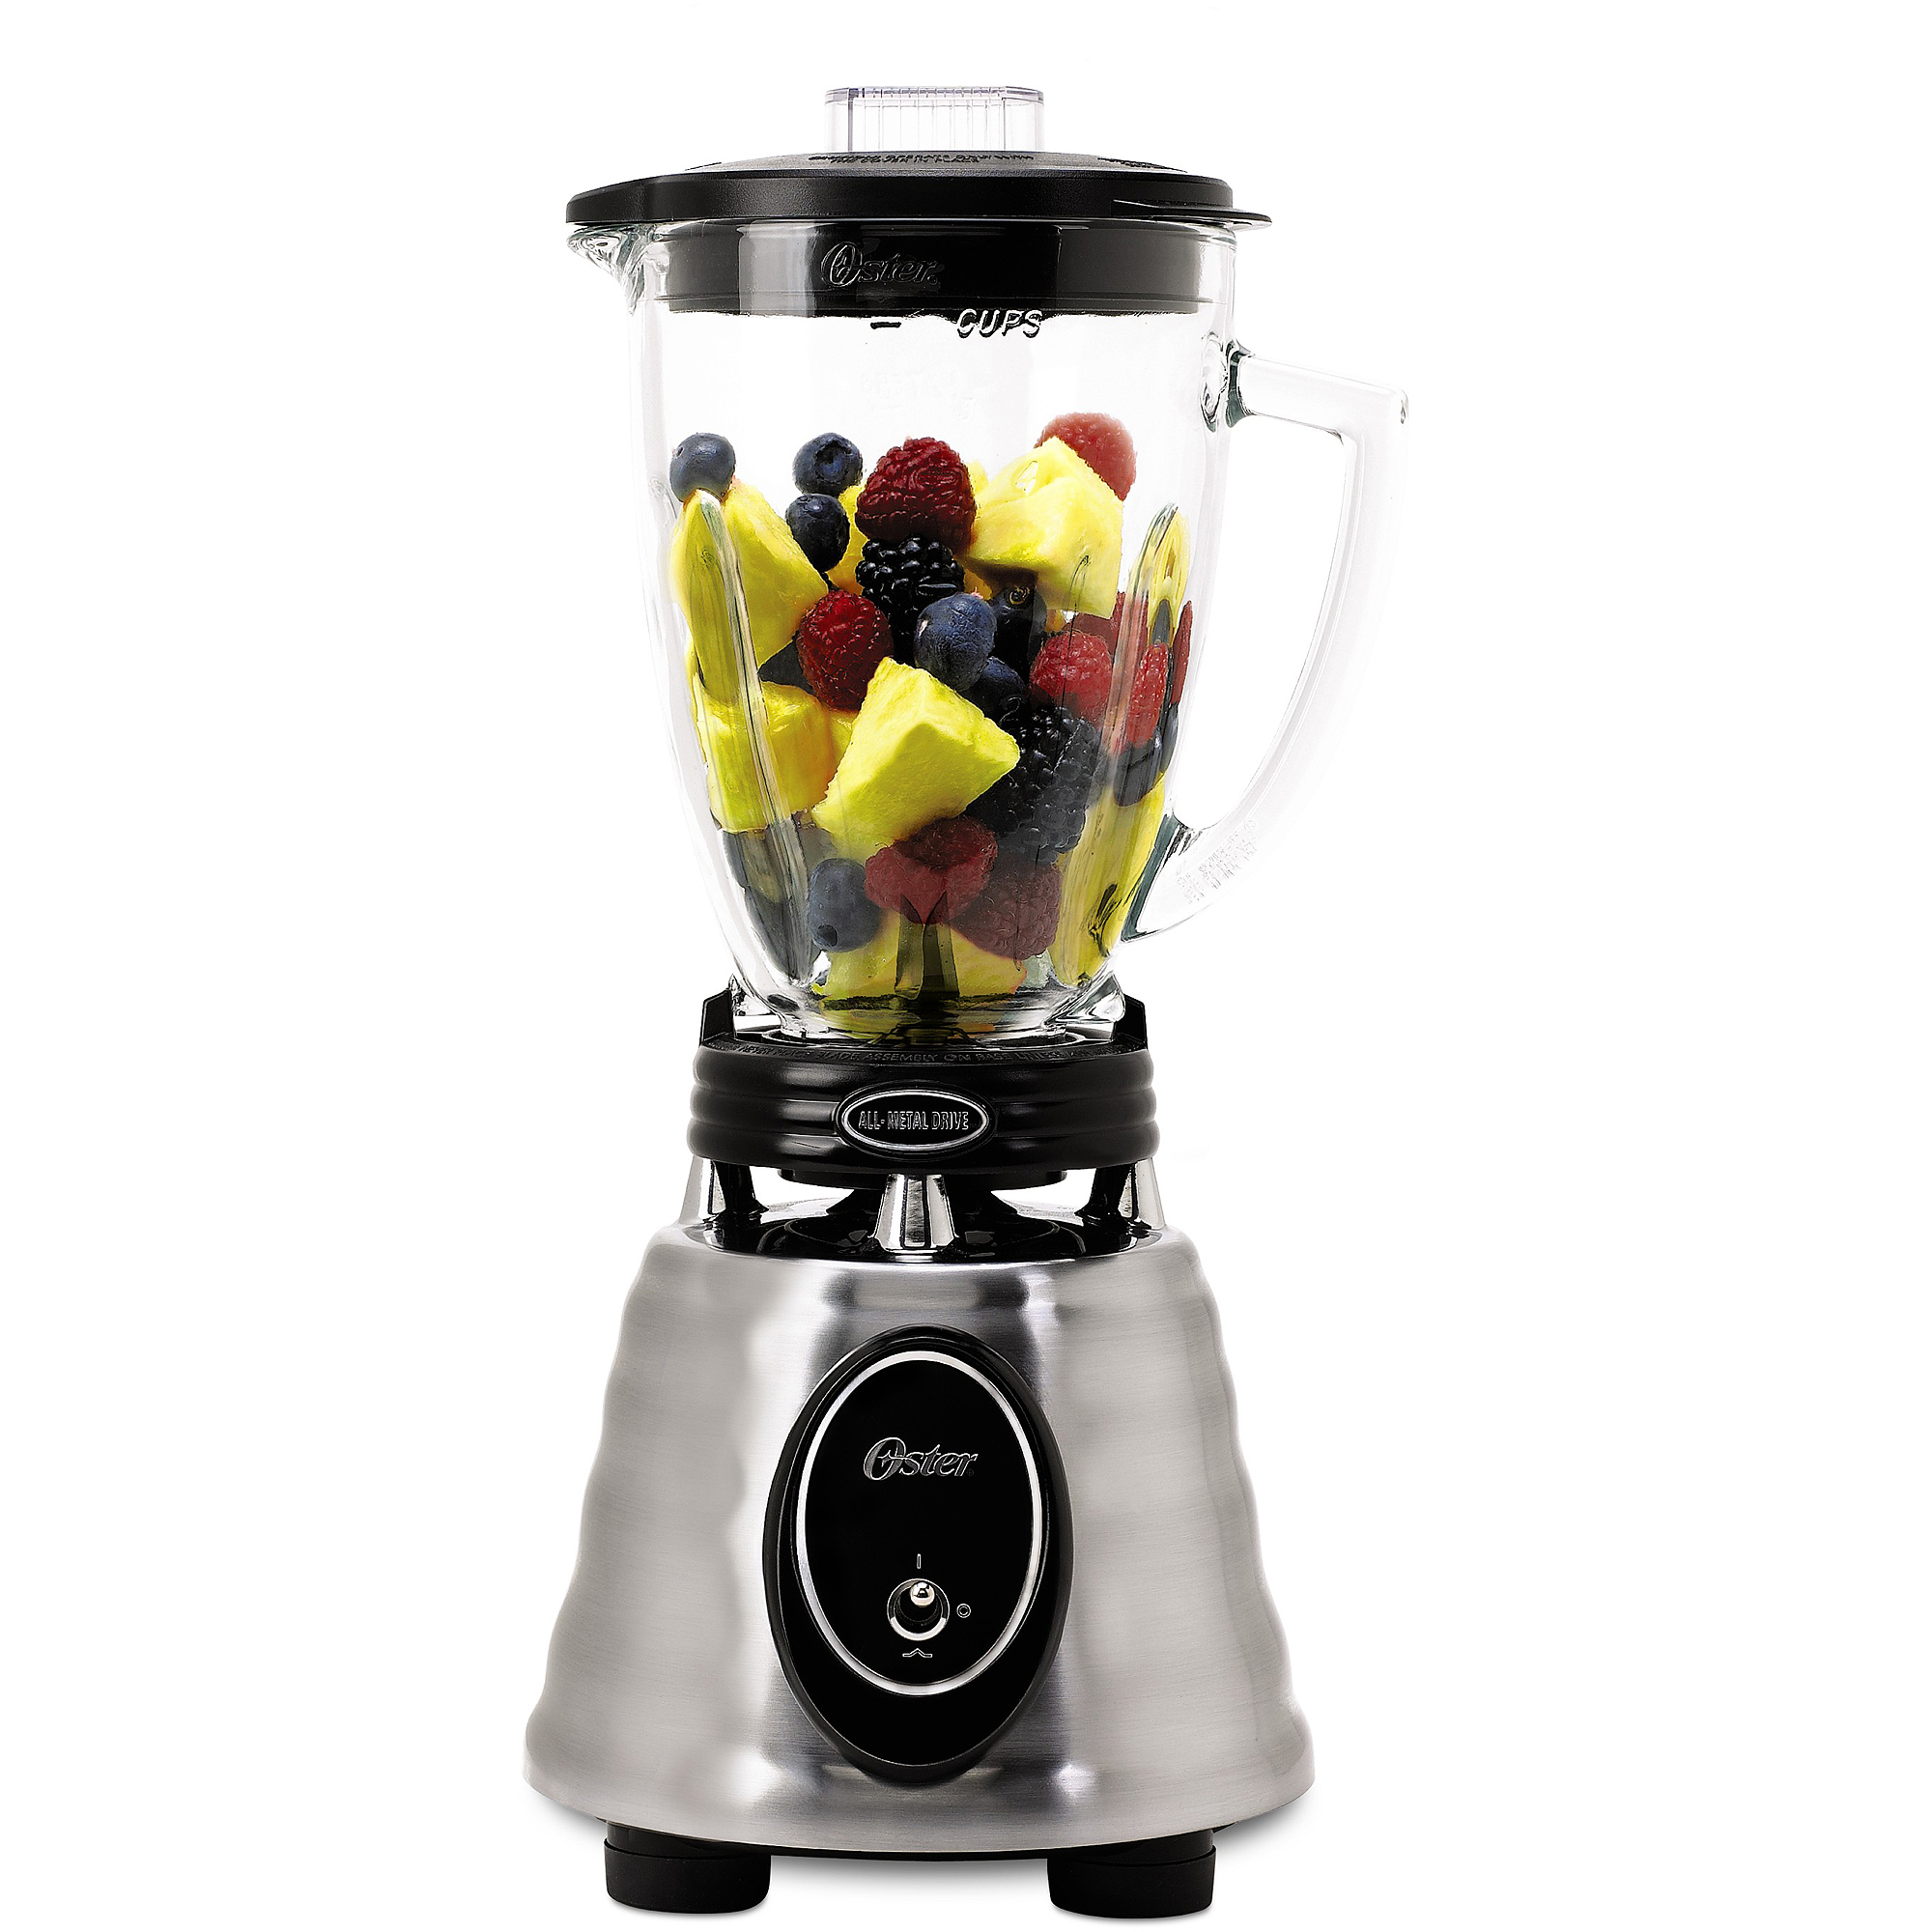 Oster Heritage Blend 400 Blender Brushed Stainless, BPCT02-BA0-NP0